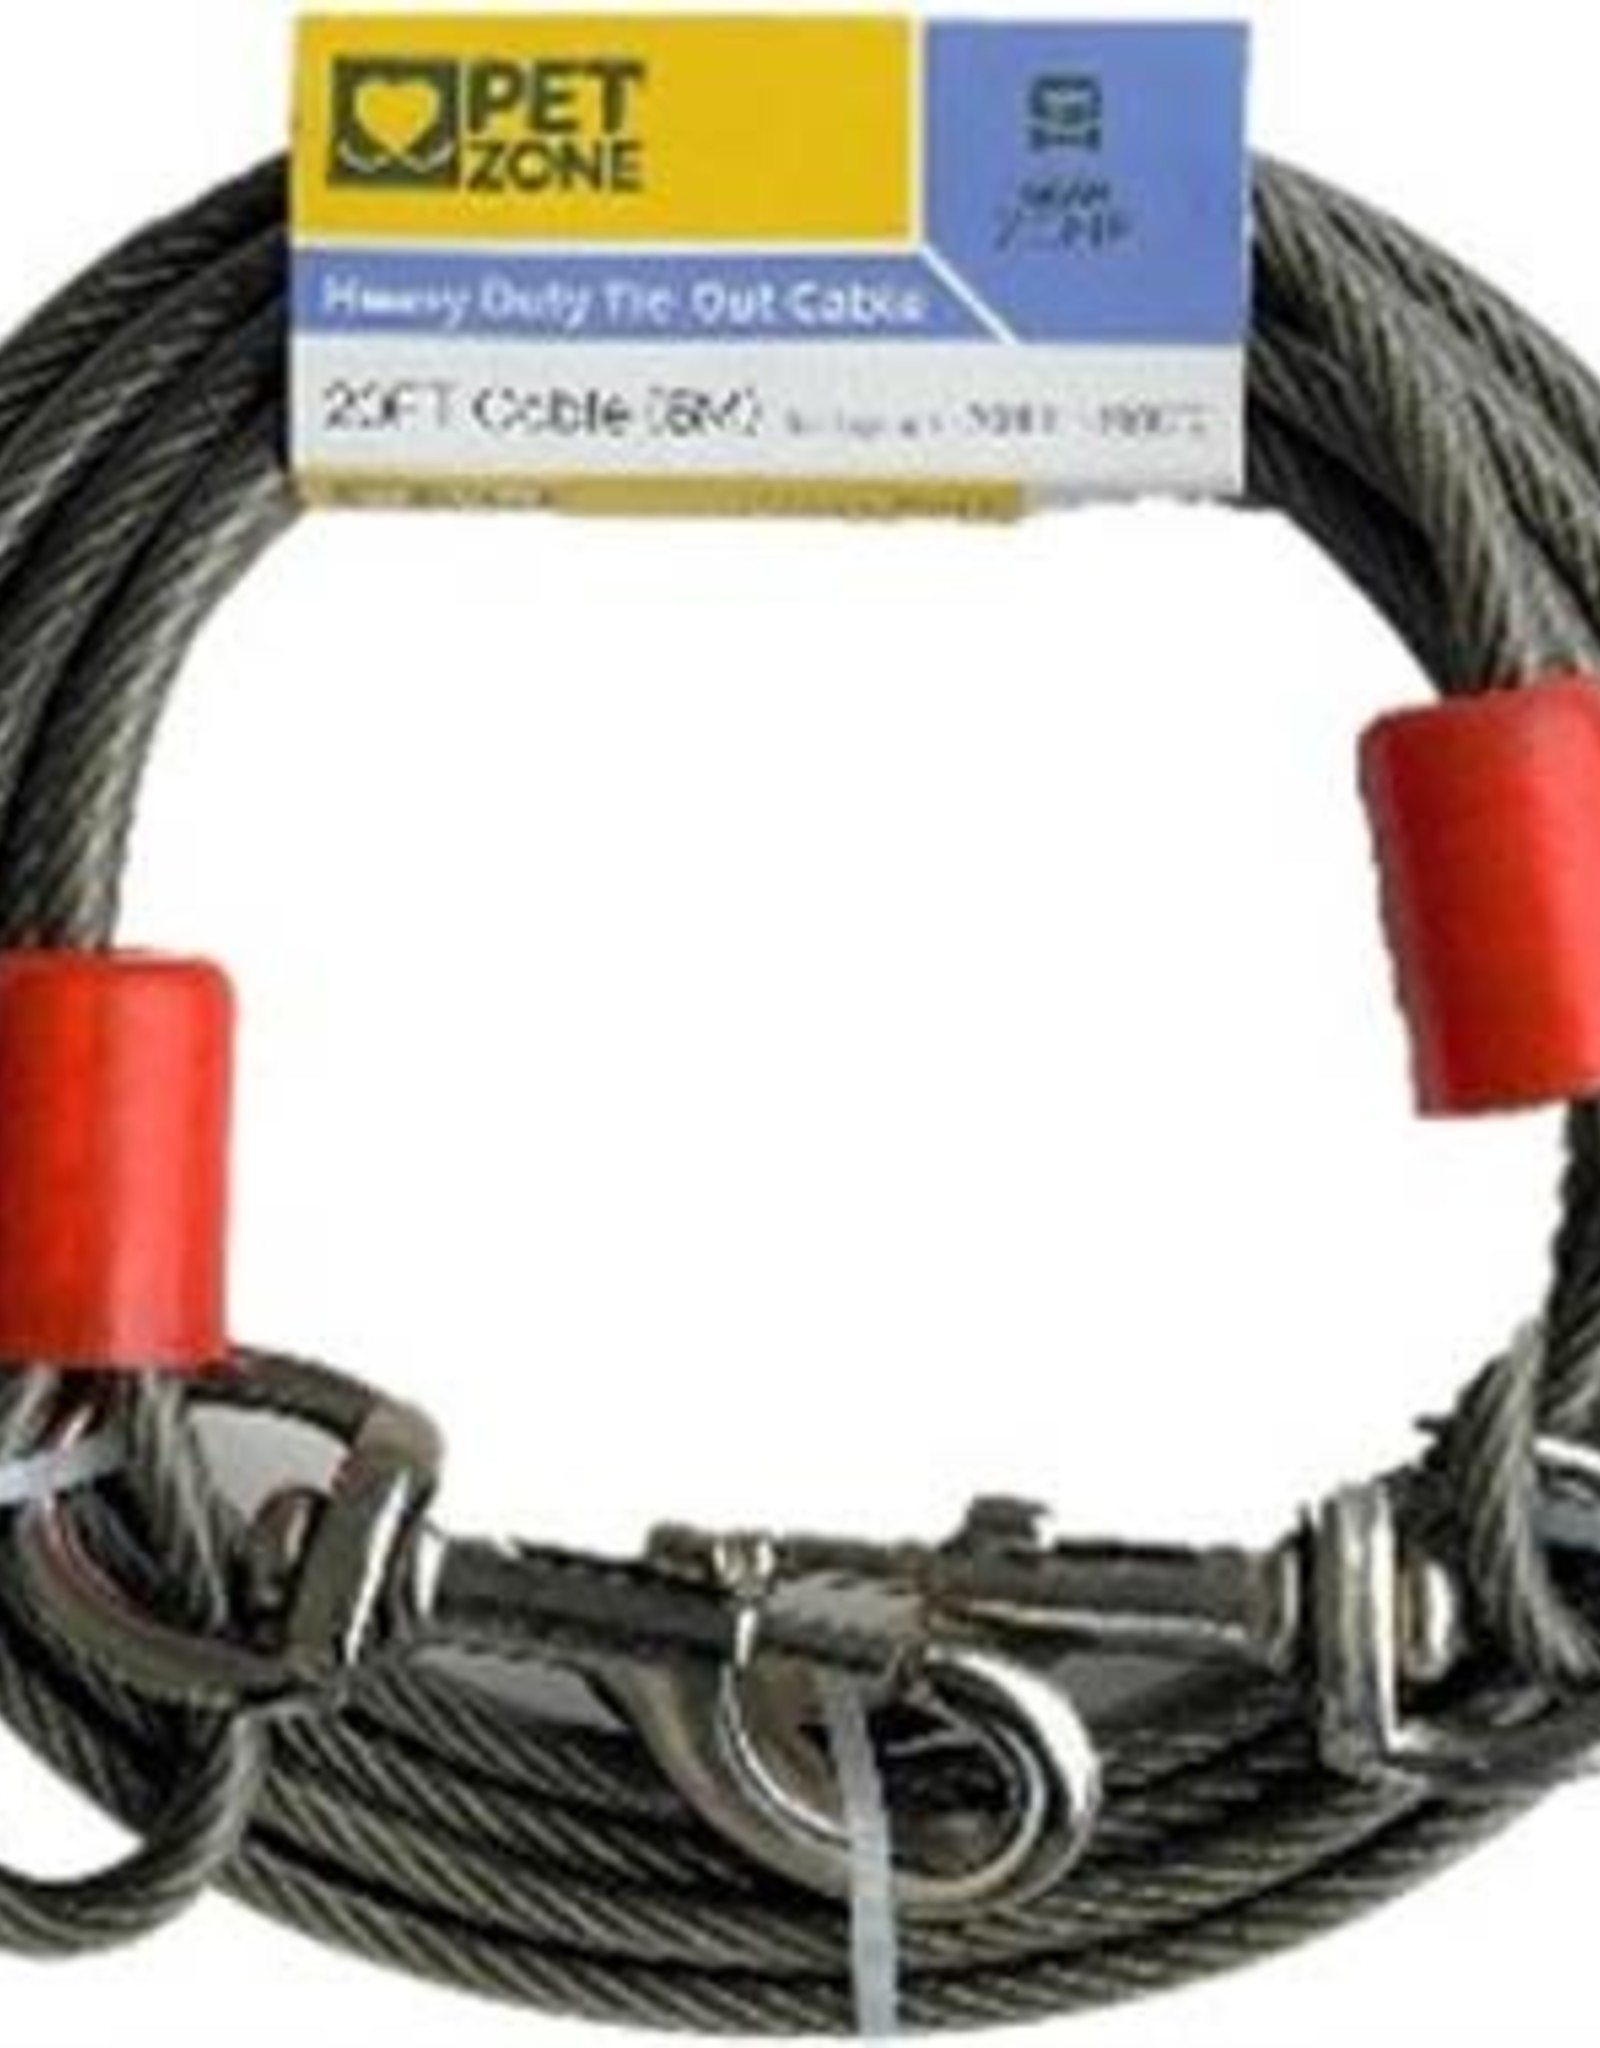 Pet Zone 20 FT Heavy Duty Tie Out Cable